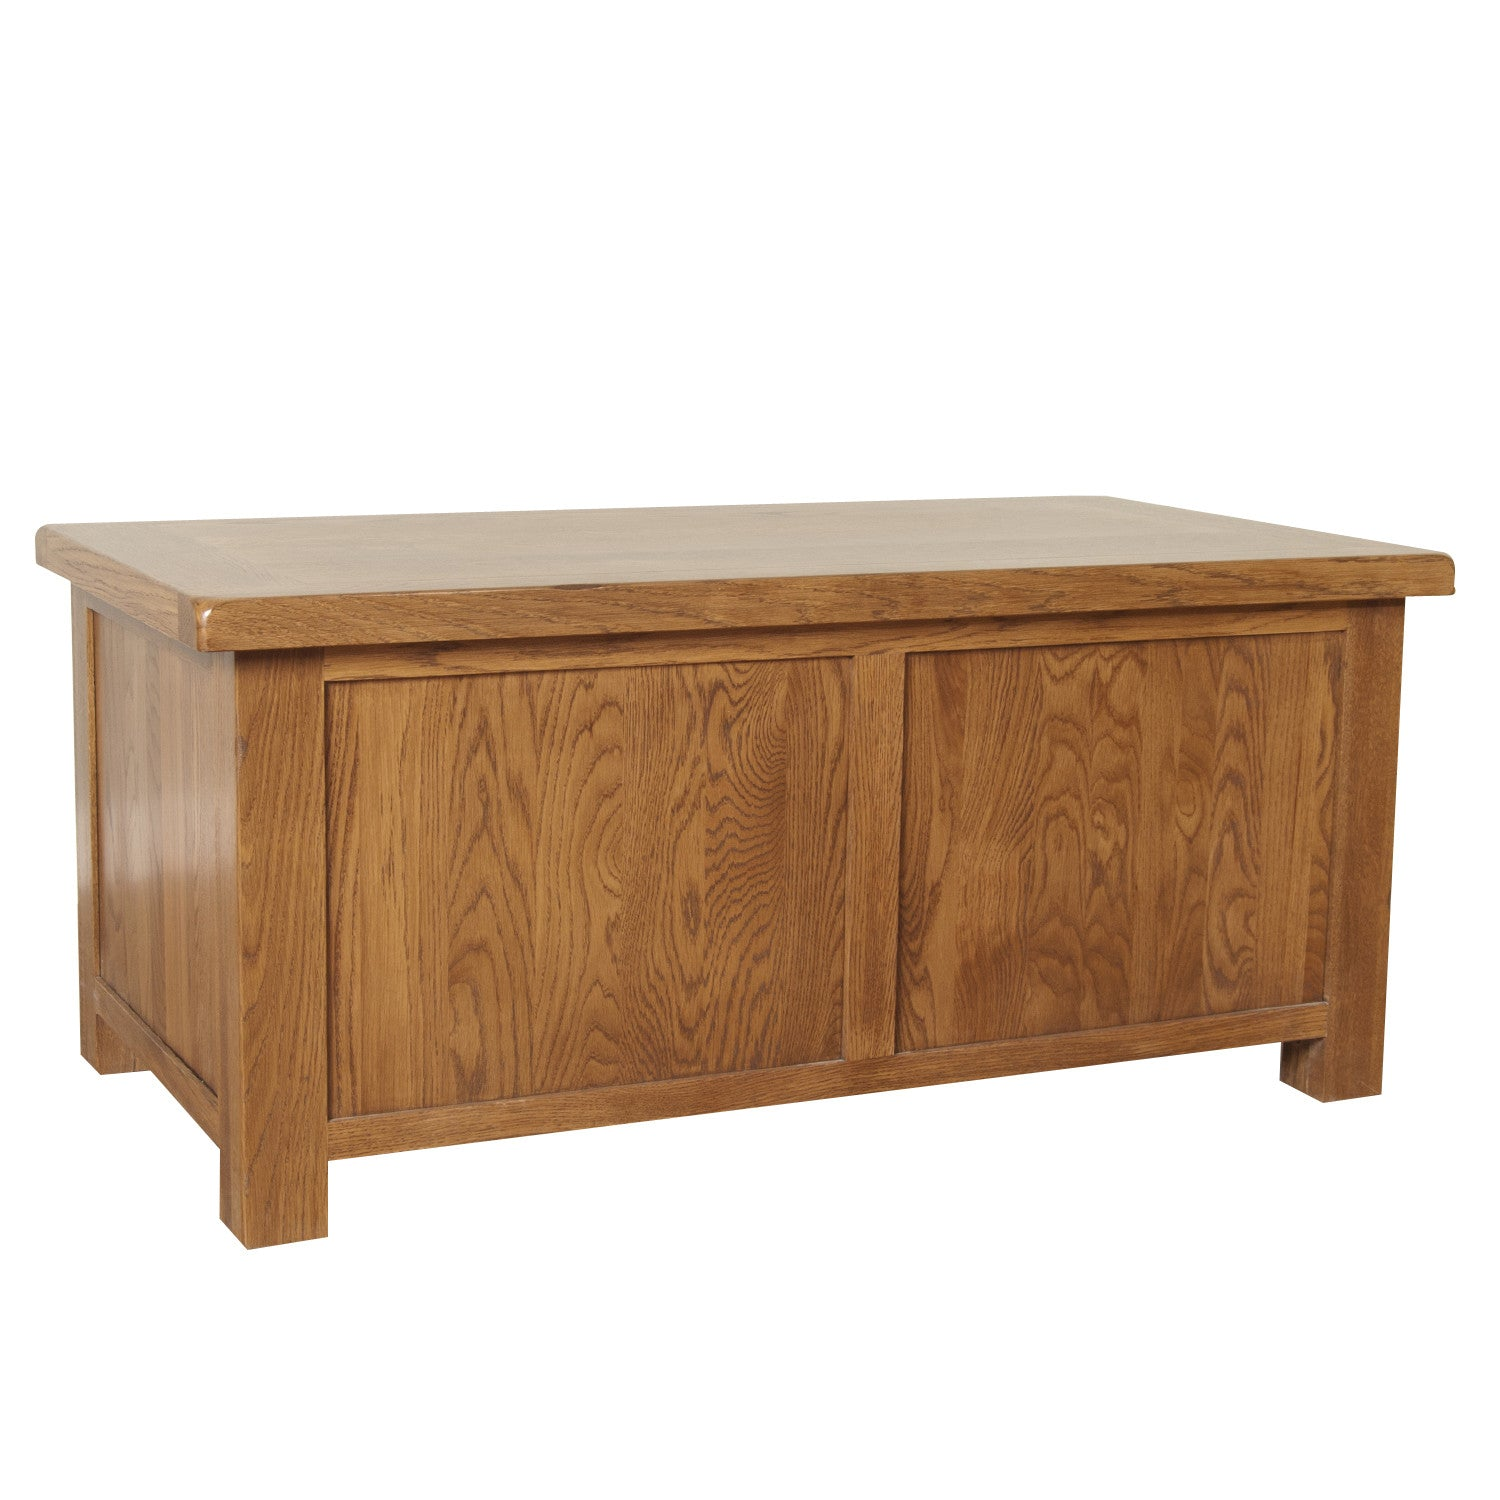 Auvergne Solid Oak Blanket Box - Large - Better Furniture Norwich & Great Yarmouth